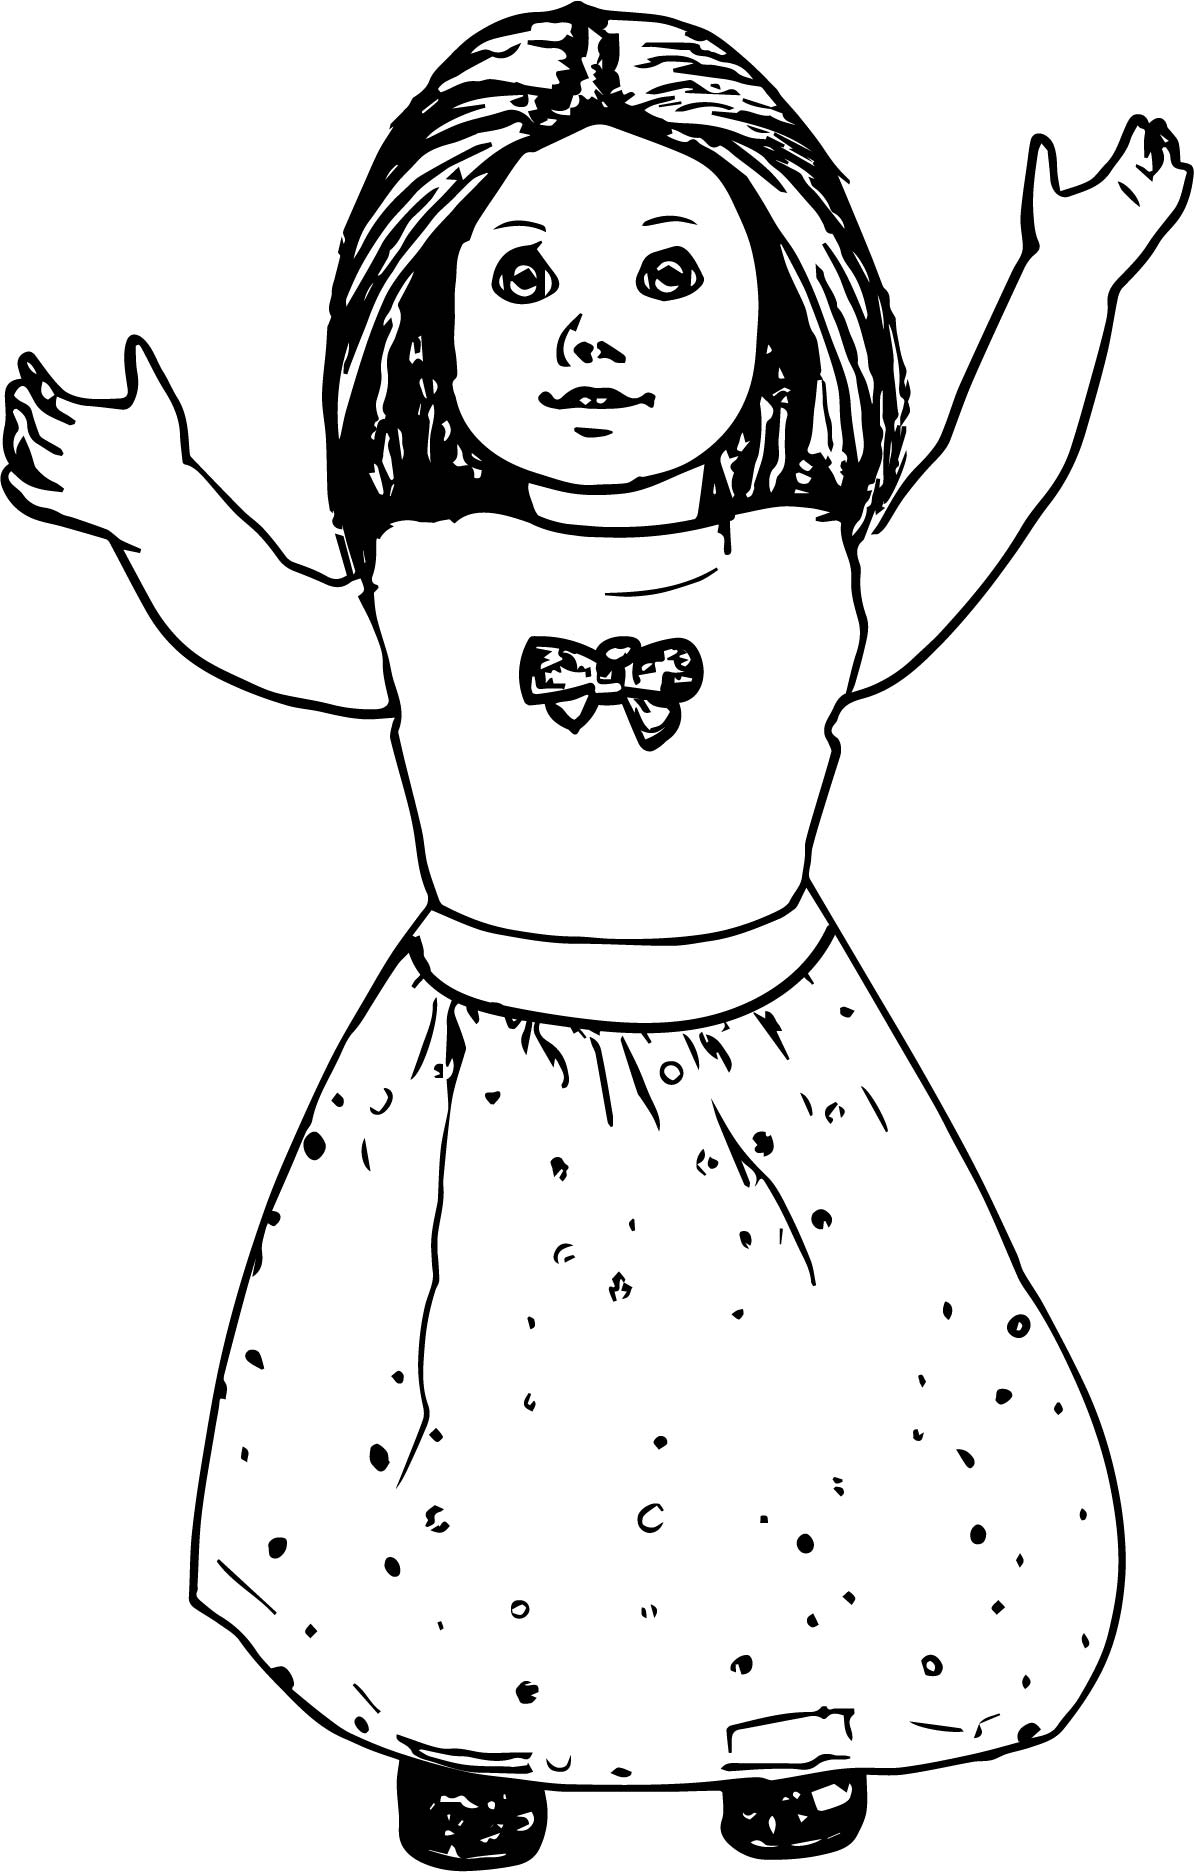 free printable american girl doll coloring pages american girl doll coloring pages to print 101 coloring american free girl printable coloring doll pages